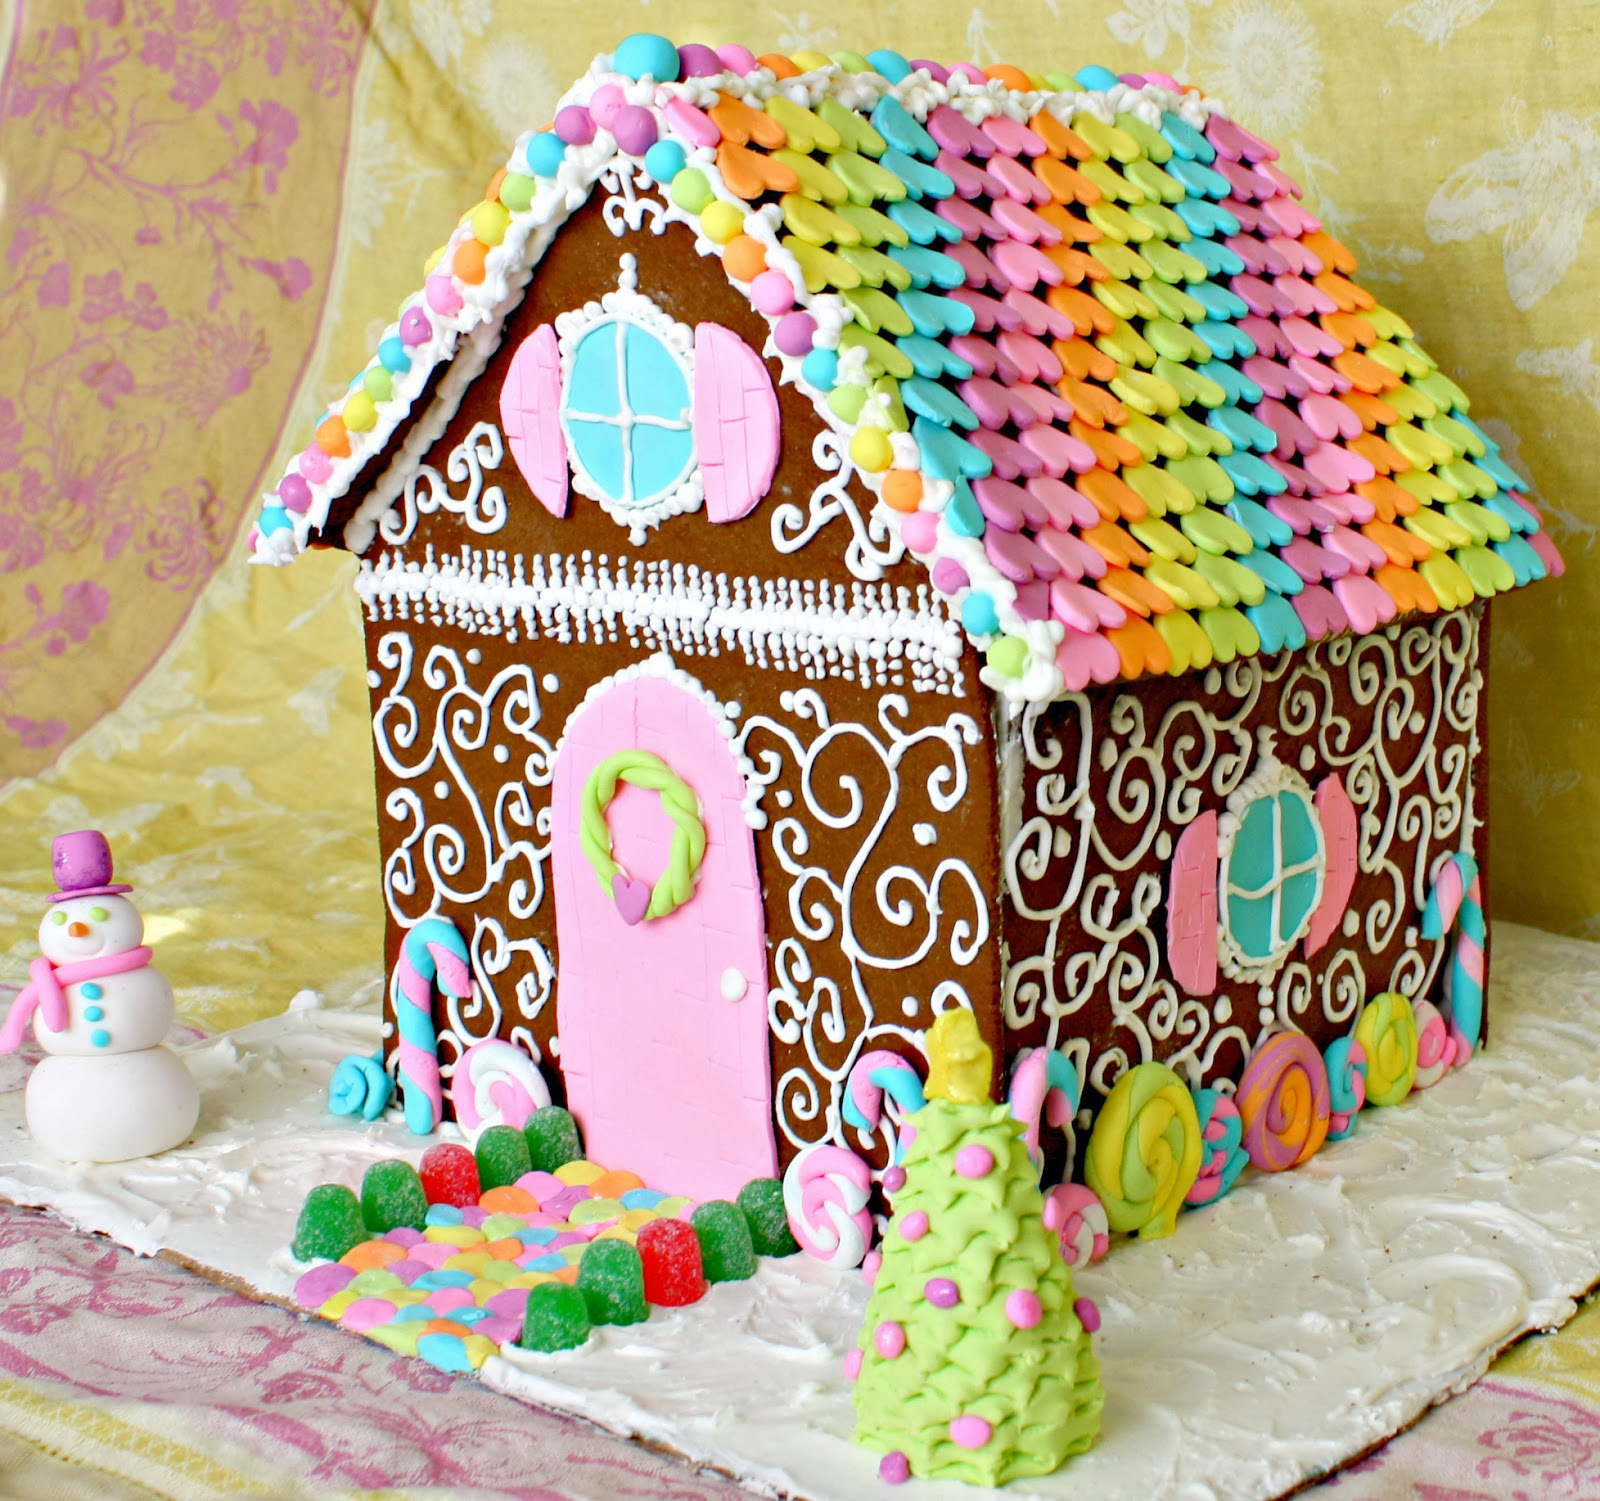 Gingerbread Houses Have Always Had Two Speeds For Me: Those Kit Things You  Get From Places Like Target, Or Those Impossibly Detailed Ones Like Martha  ...